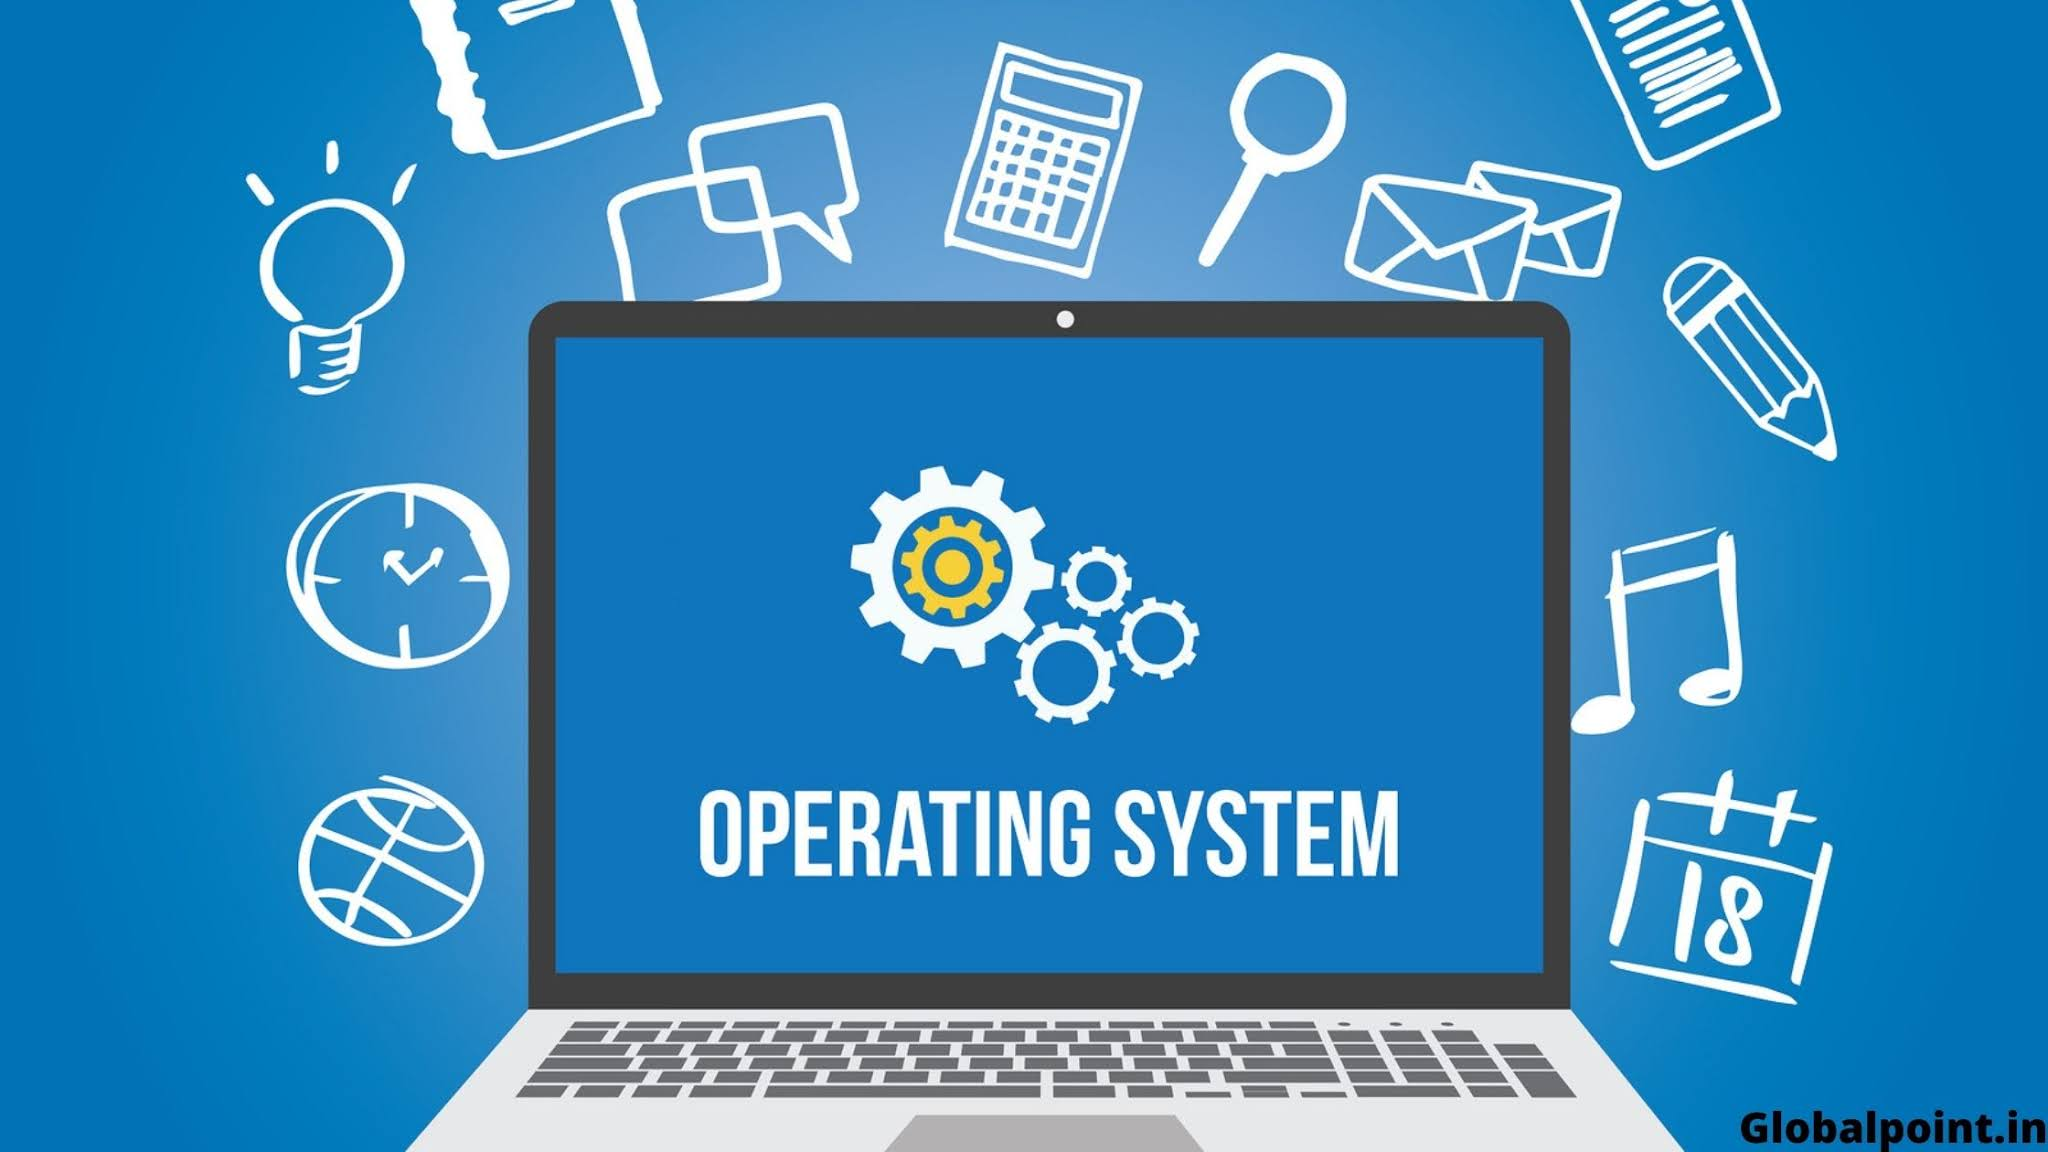 Operating System in Hindi